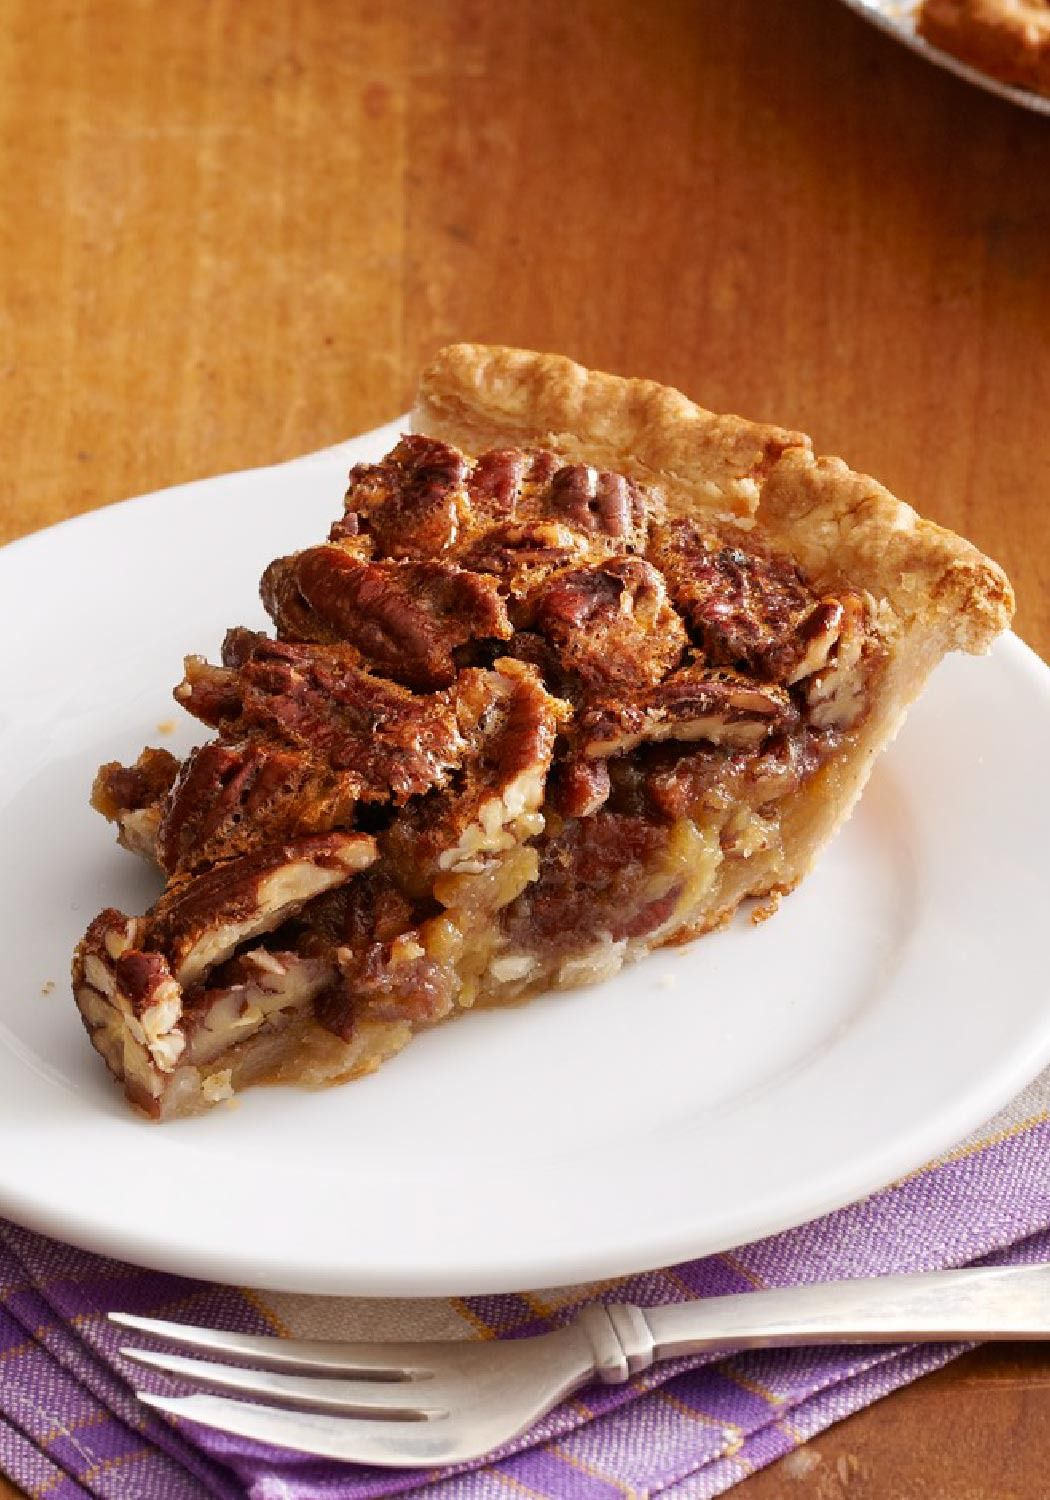 be546f2087635fef83f9f85d389267b8 - Better Homes And Gardens Southern Pecan Pie Recipe